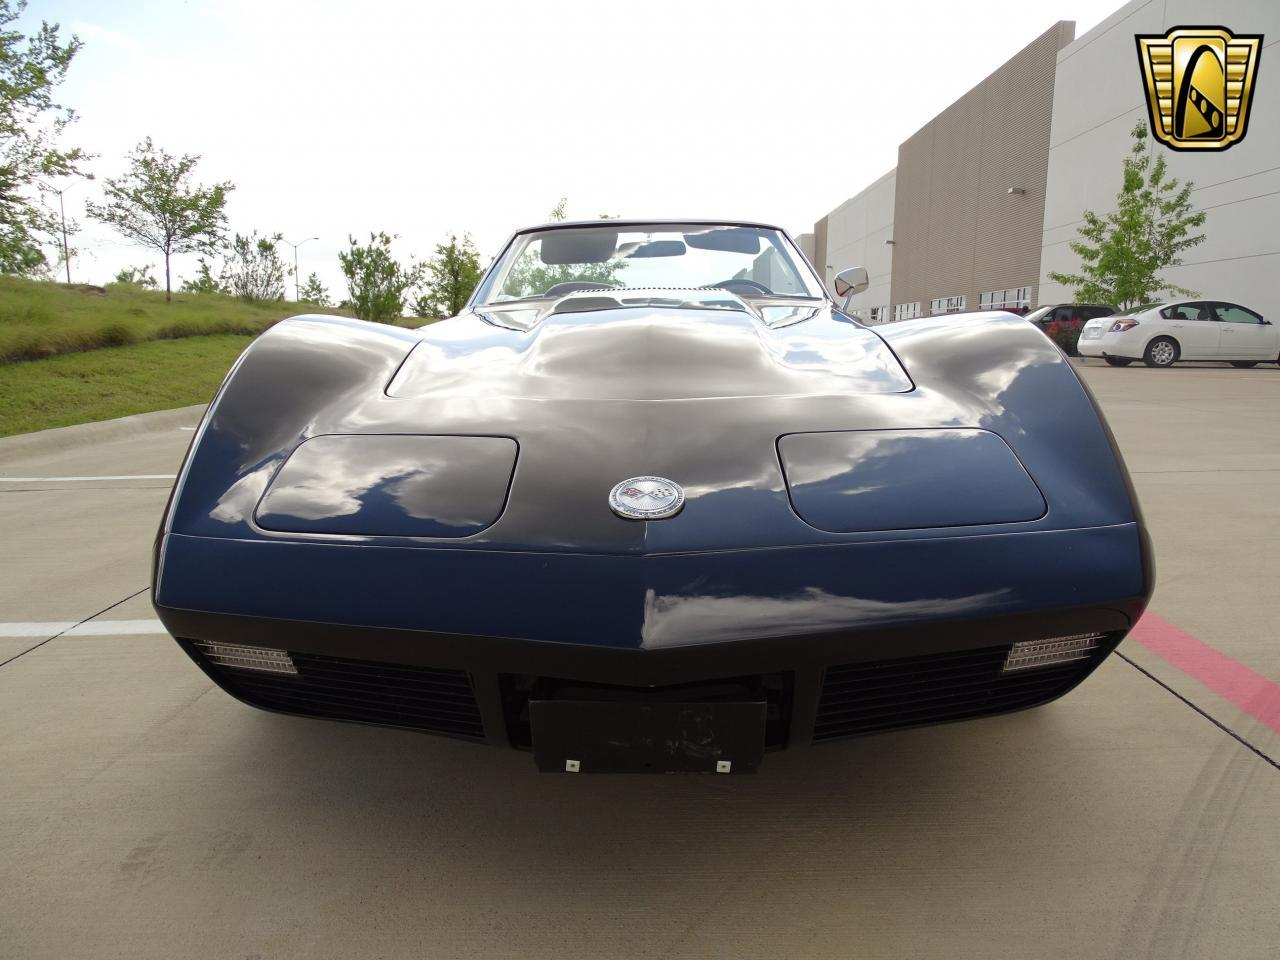 Large Picture of '74 Chevrolet Corvette located in Texas Offered by Gateway Classic Cars - Dallas - LAOQ